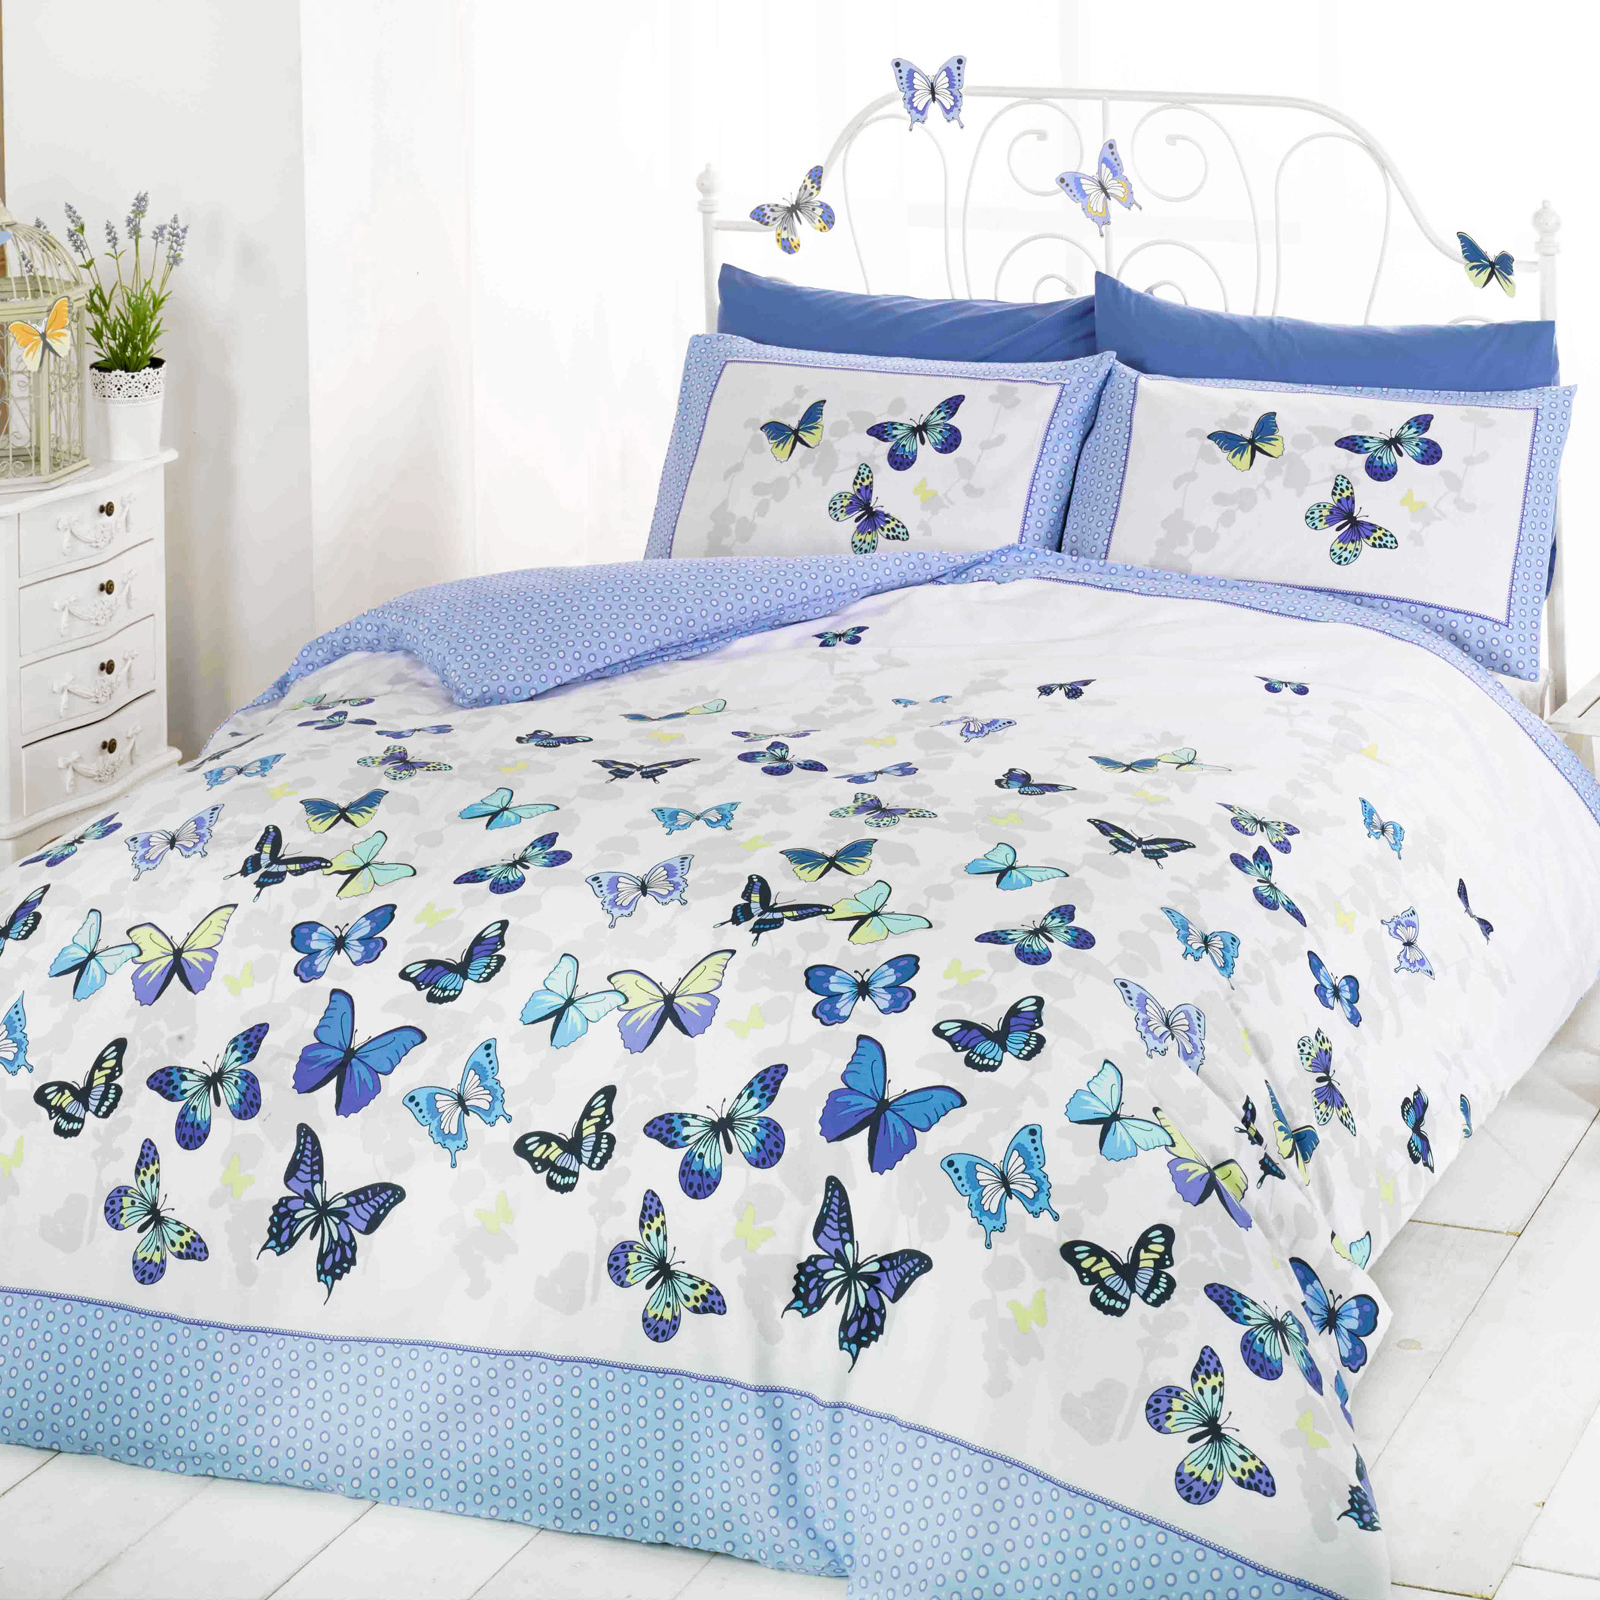 Blue polka dot bedding - Girls Butterfly Bedding Reversible Polka Dot Cotton Rich